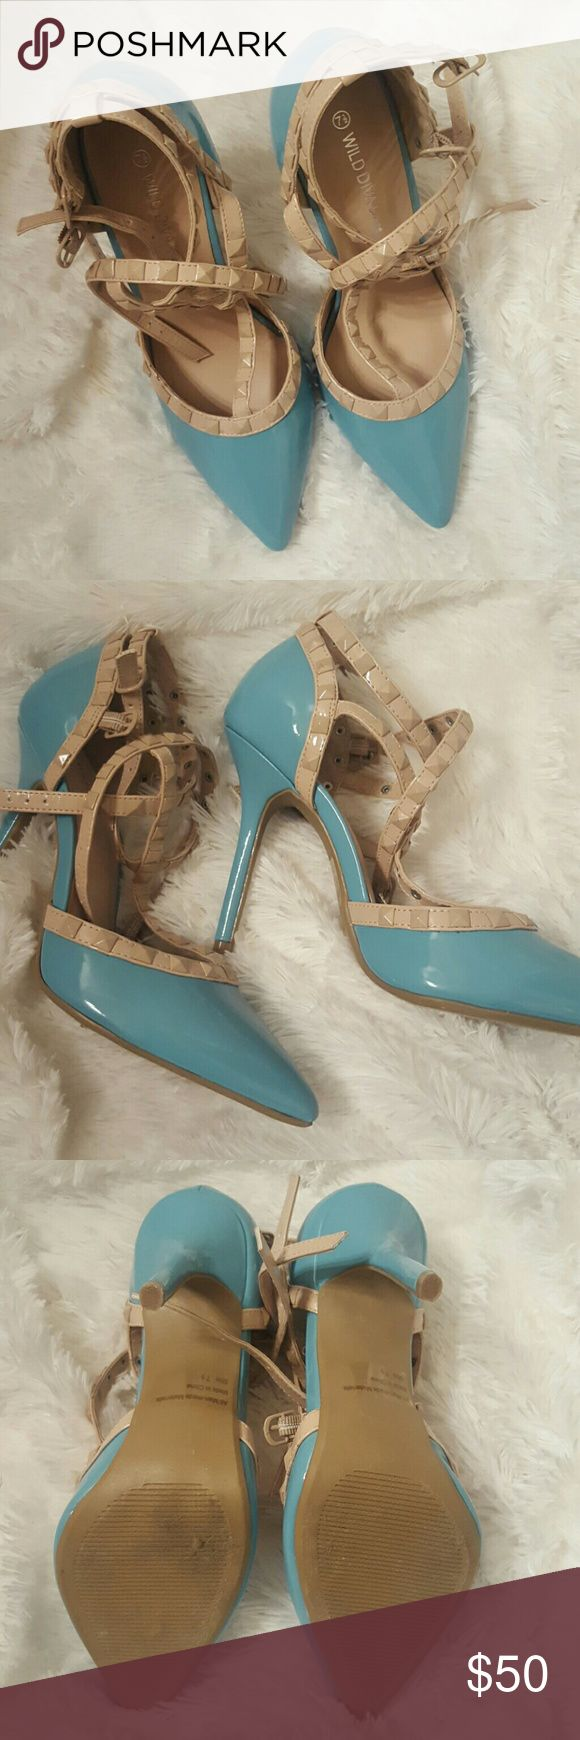 MOVING SALE BRAND NEW WILD Diva 7.5 Brand new wild dive (Valentino look alike) in 7.5 Valentino Shoes Heels